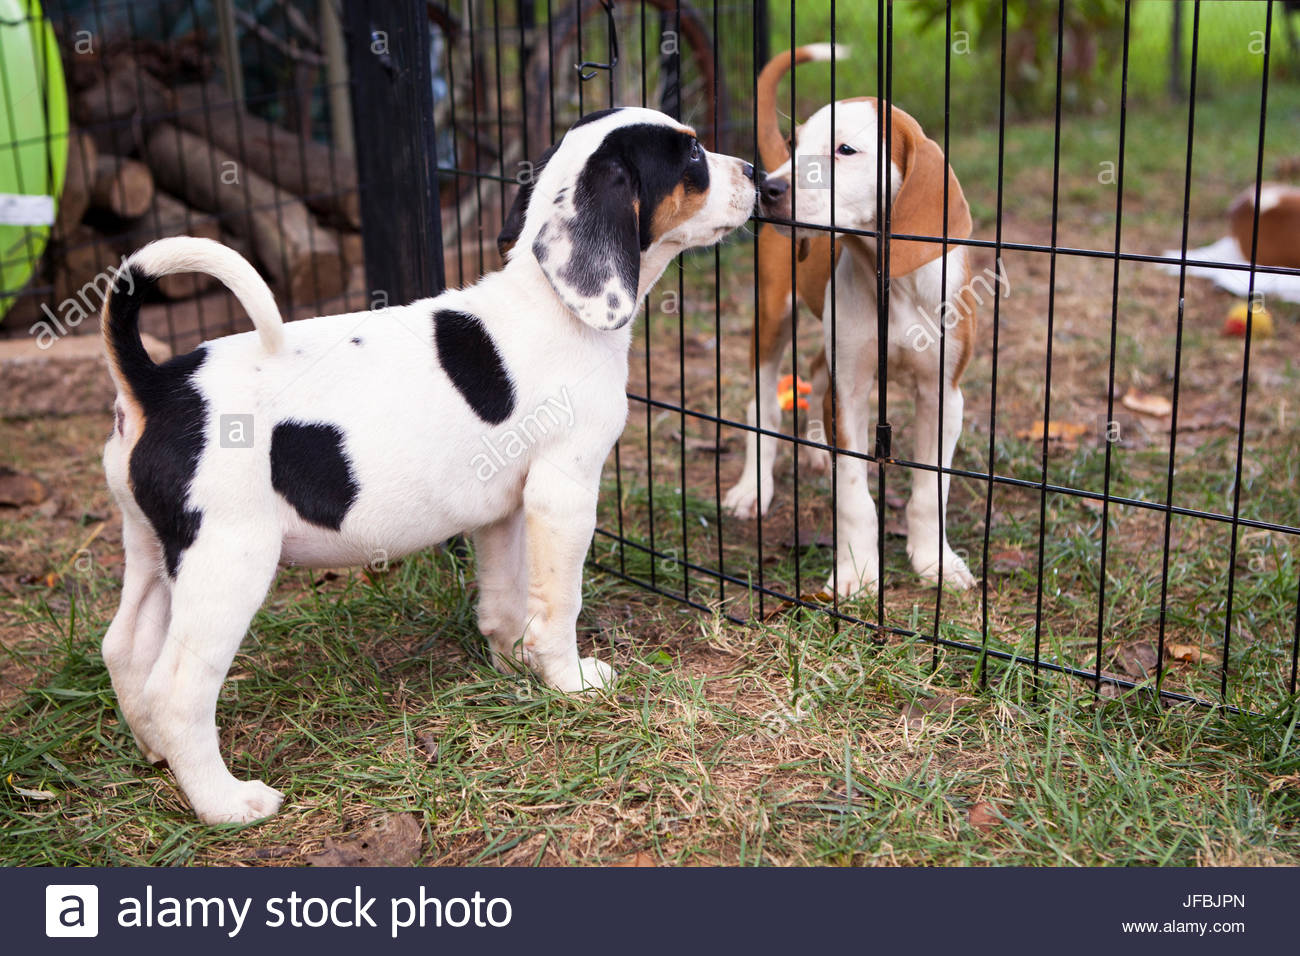 Adoptable hound puppies play in the backyard of their foster family as they await their forever homes. - Stock Image